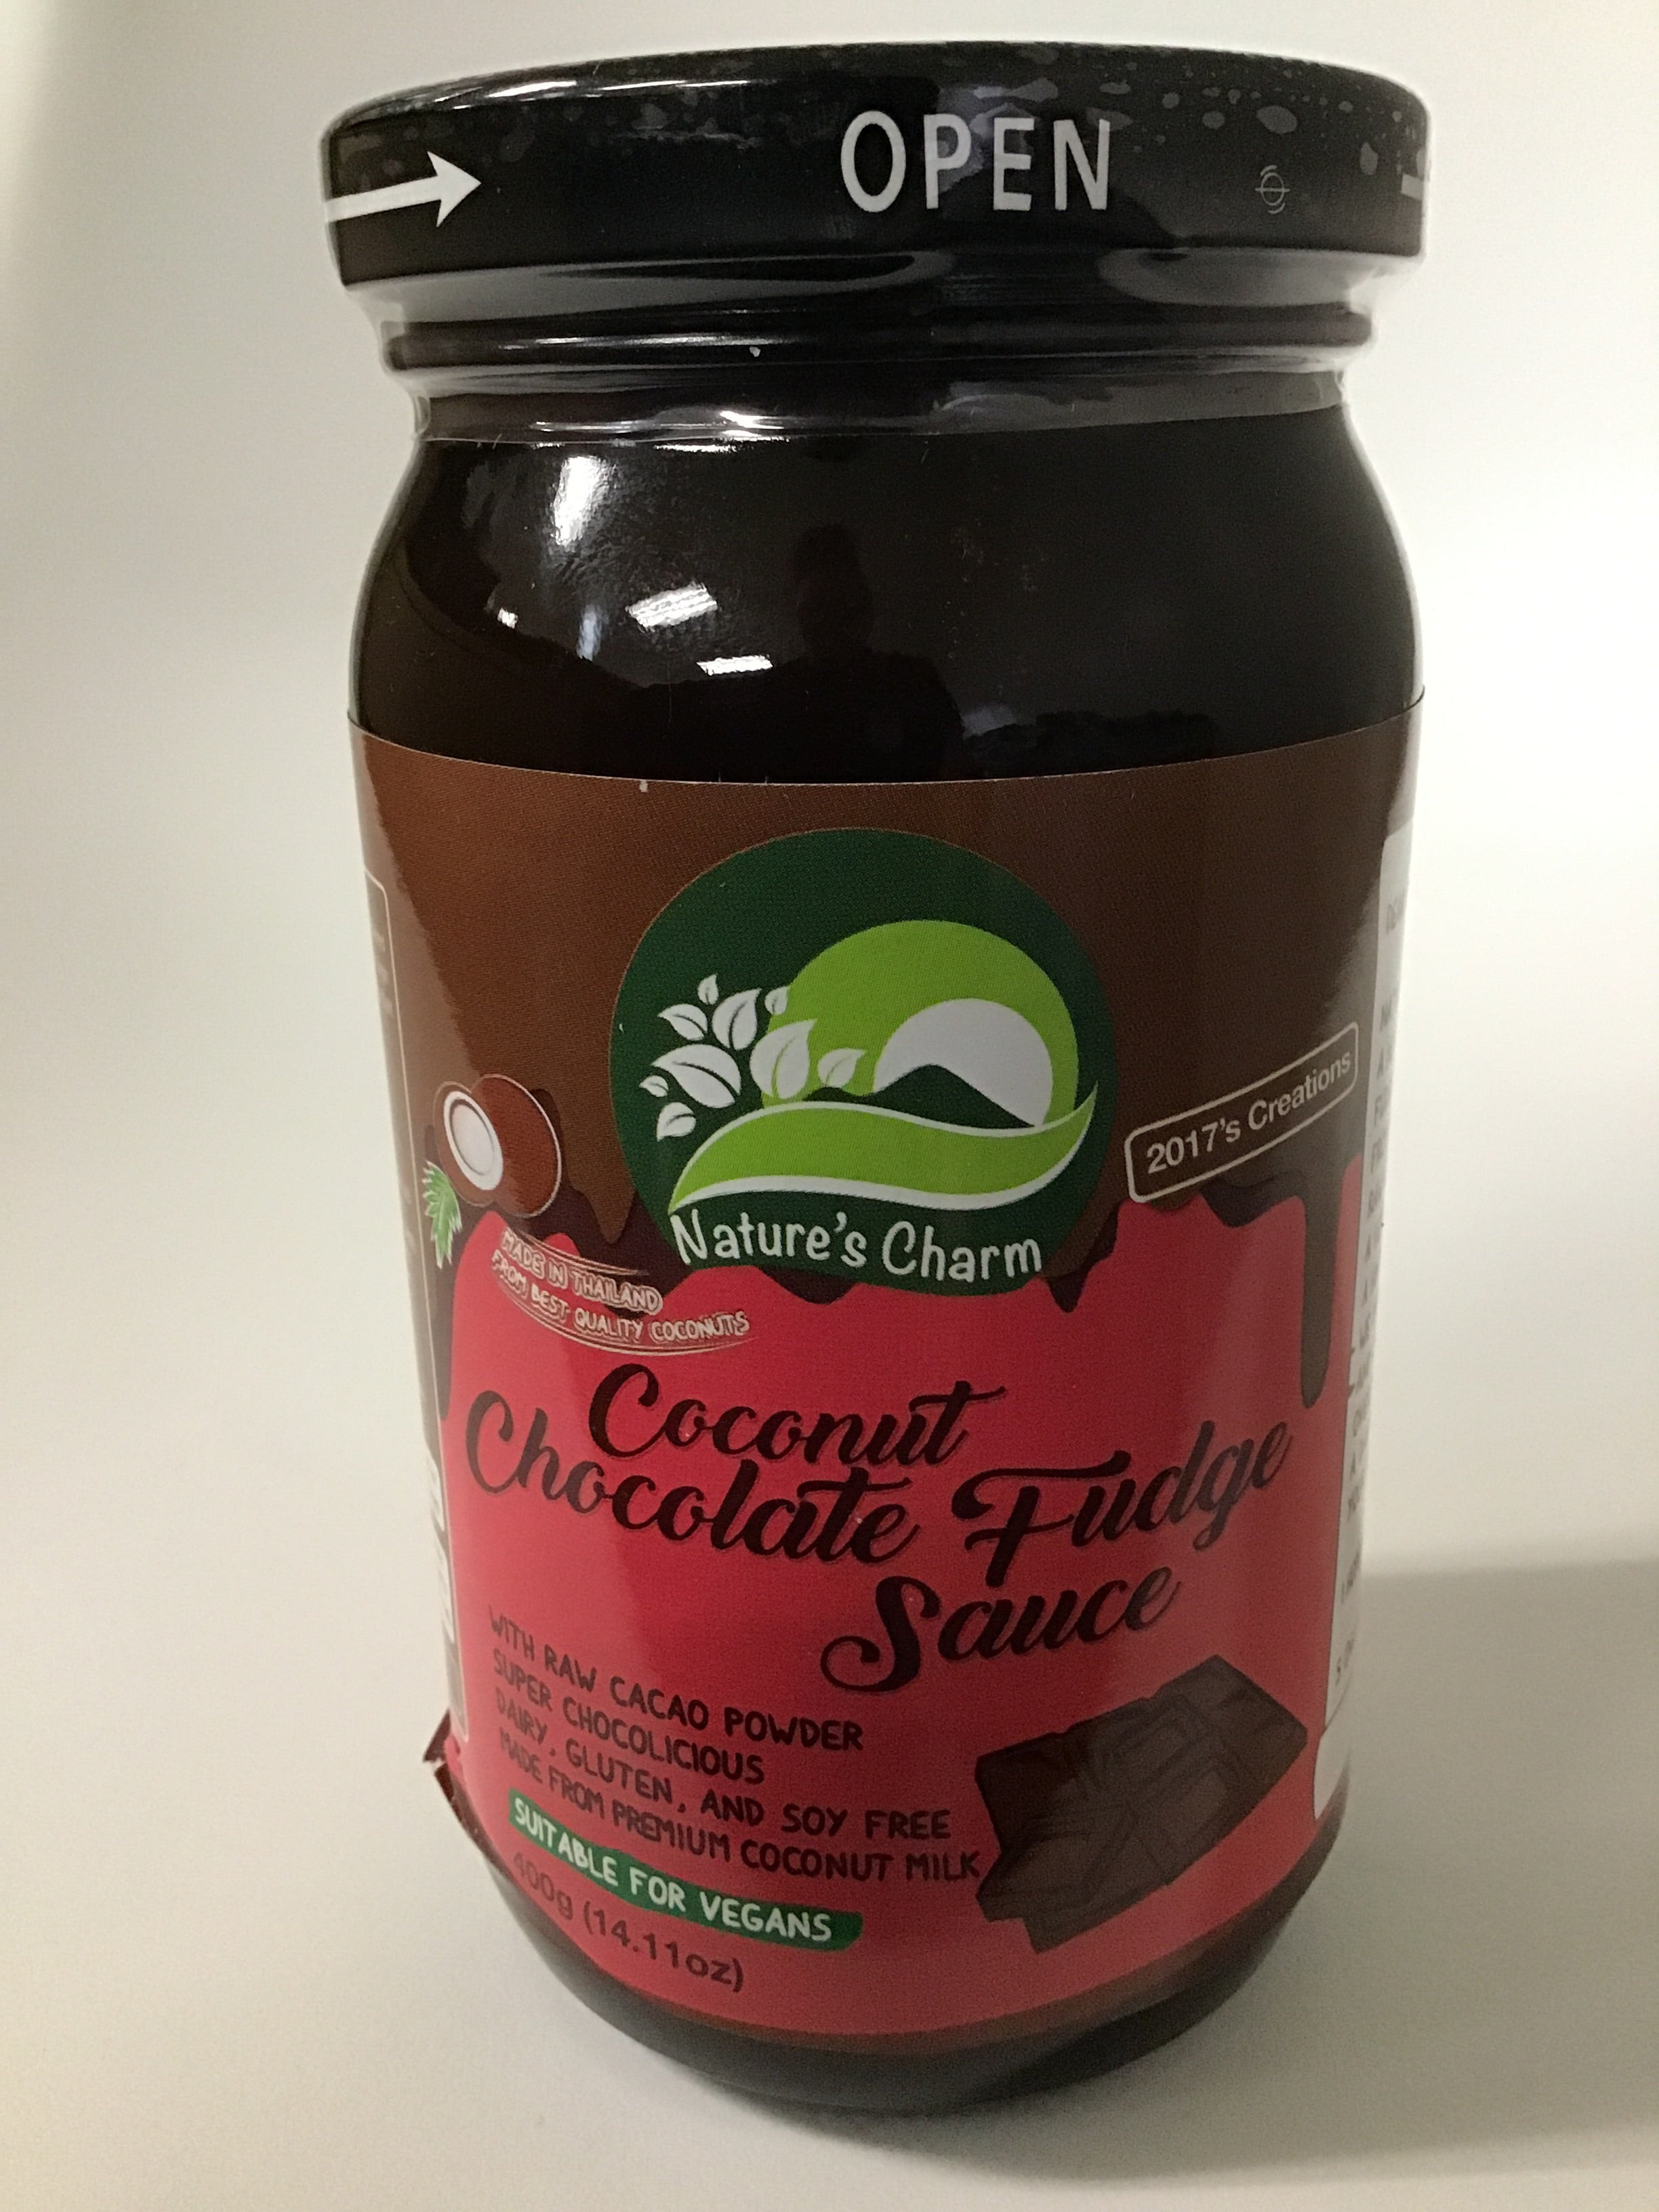 Natures Charm - Coconut Chocolate Fudge Sauce